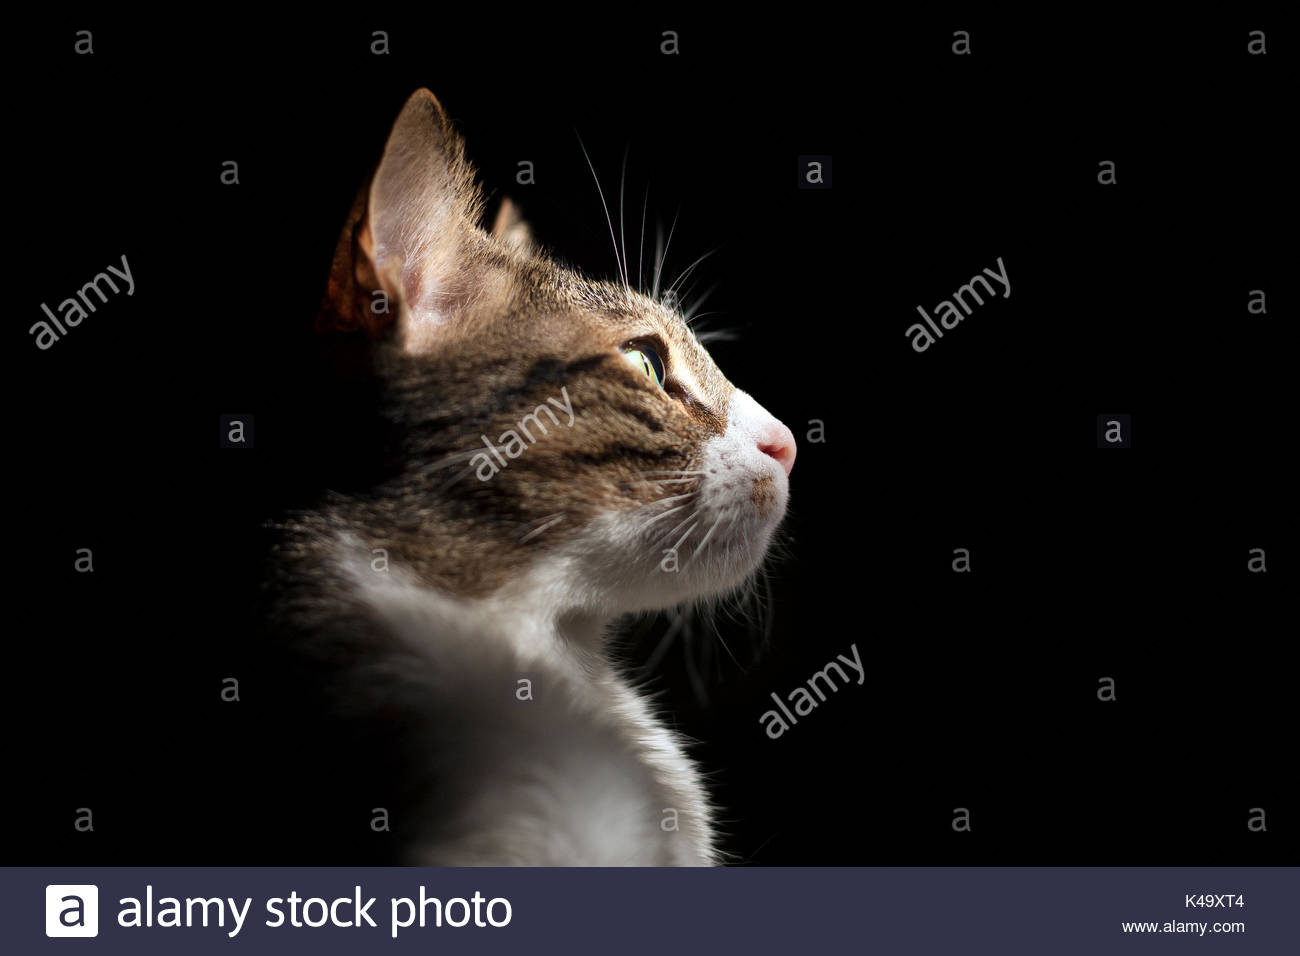 profile Portrait of a cat on black background - Stock Image